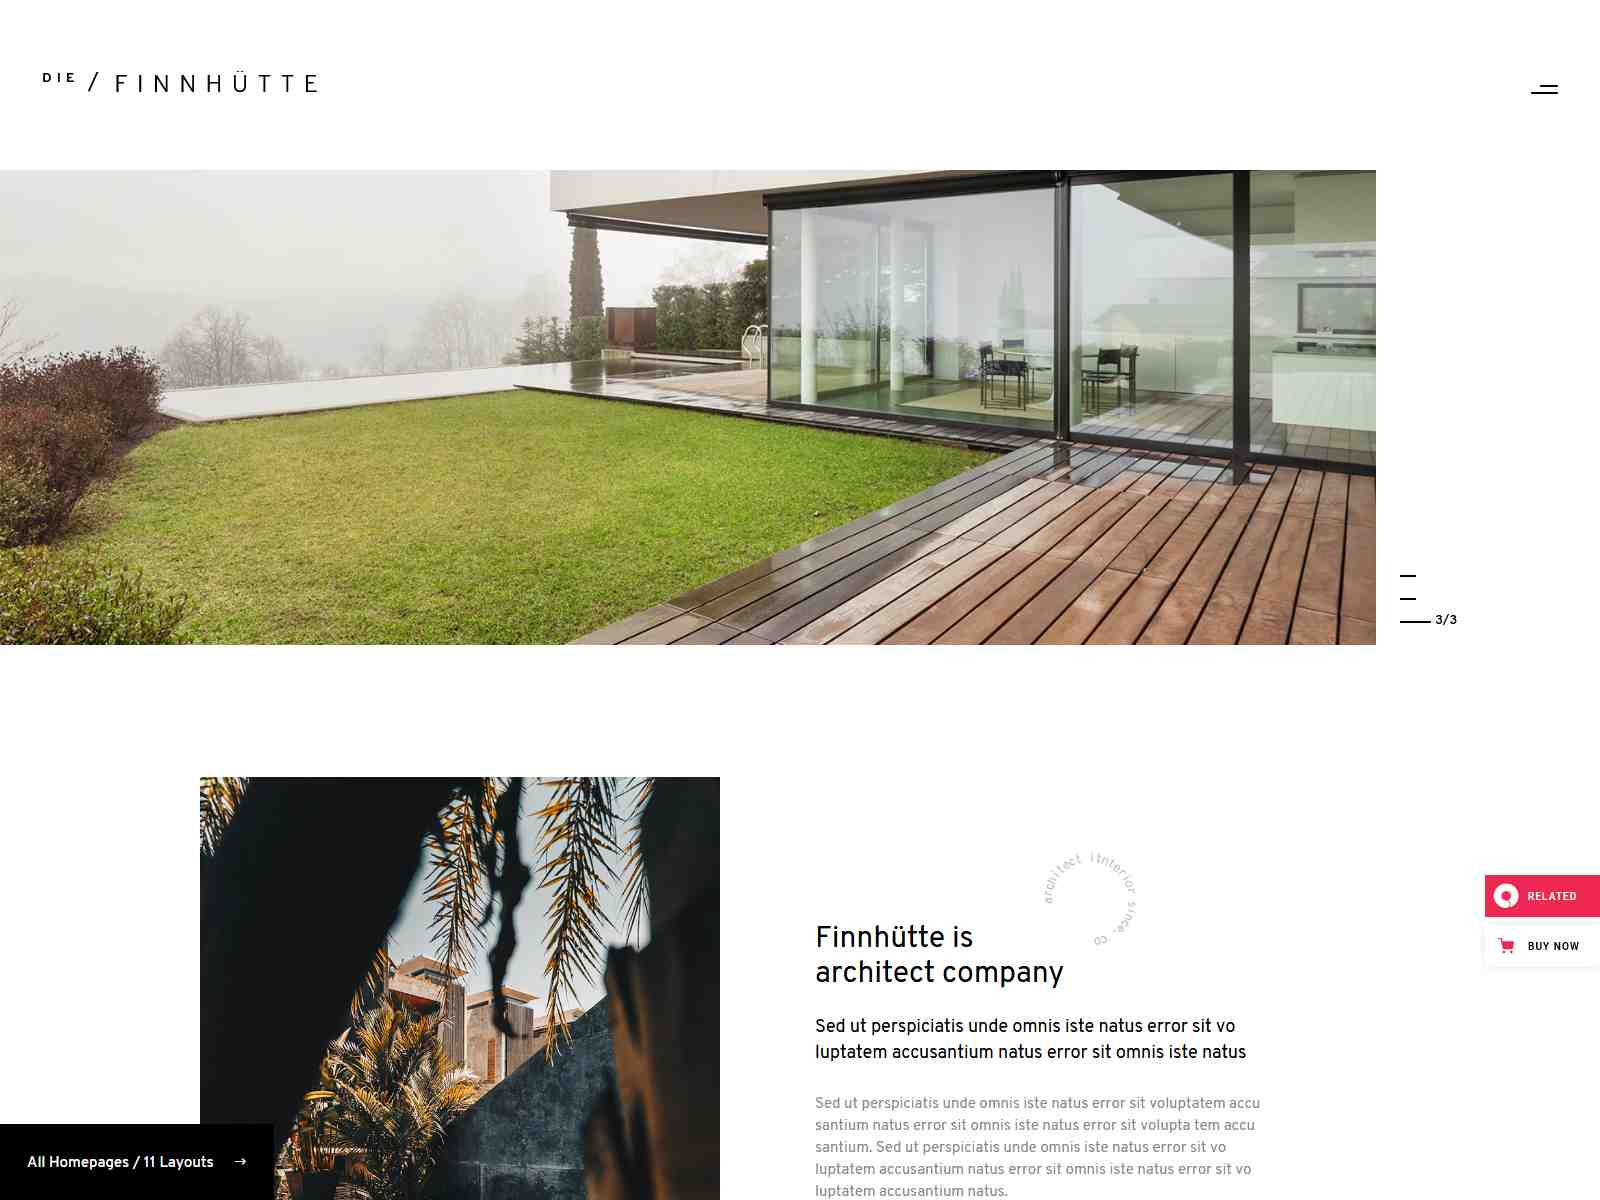 Die Finnhütte - Modern Architecture and Interior Design Theme architecture wordpress themes, real estate wordpress theme